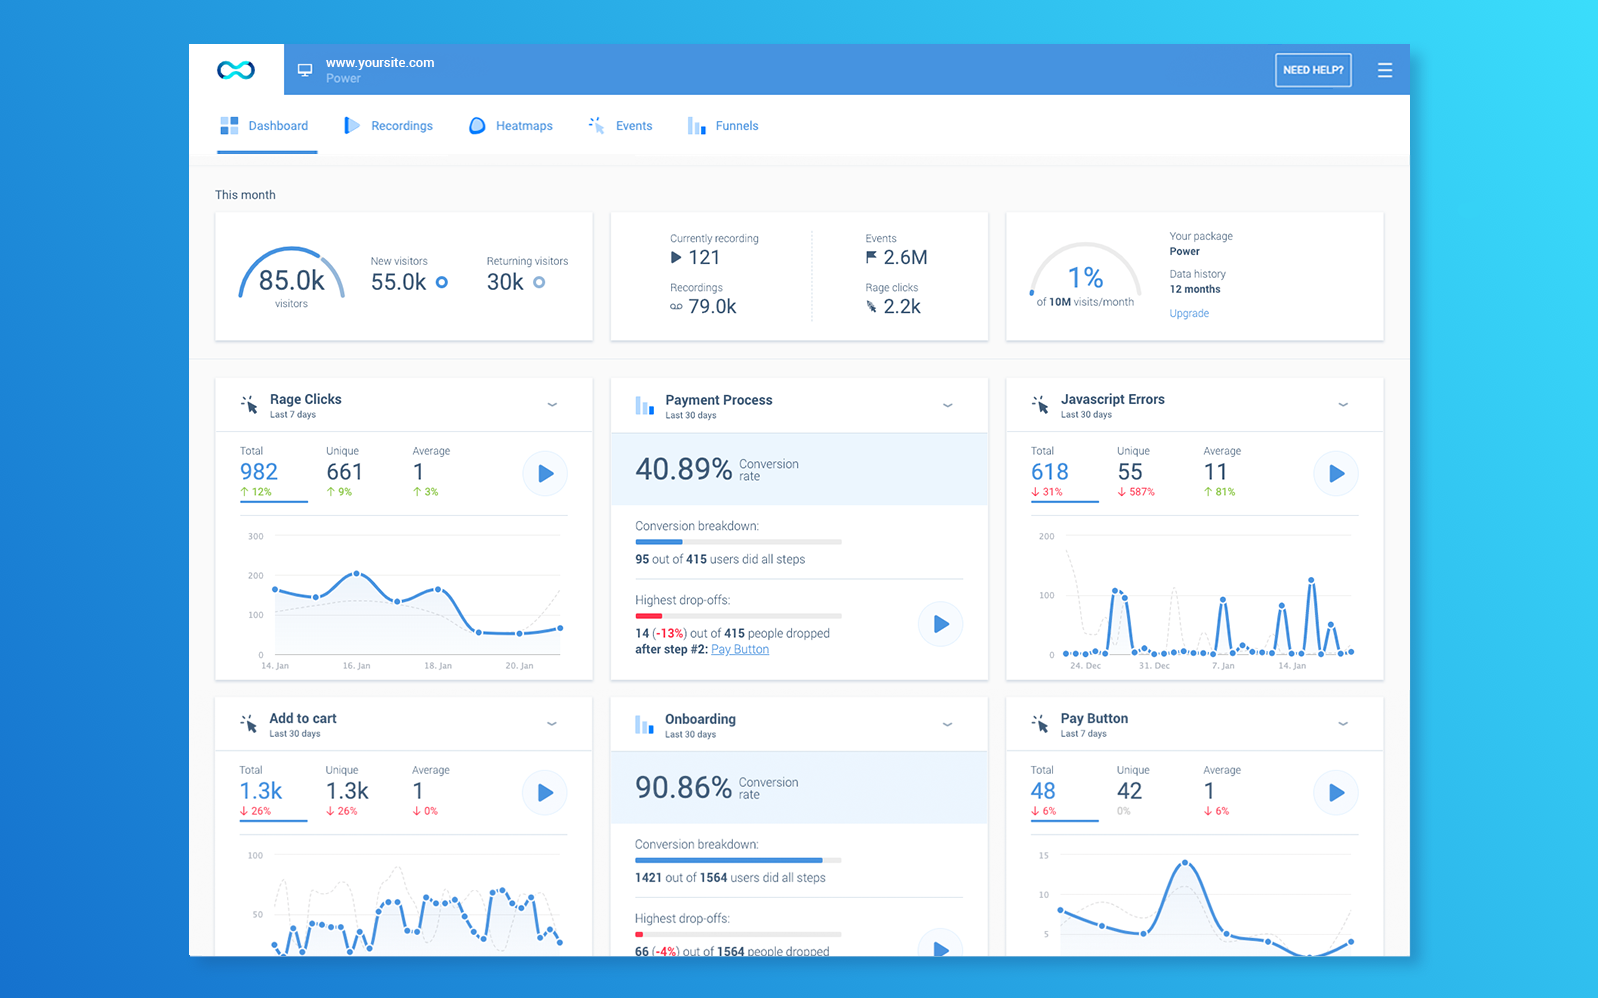 Smartlook's customizable Dashboard provides comprehensive insights in one amazing package